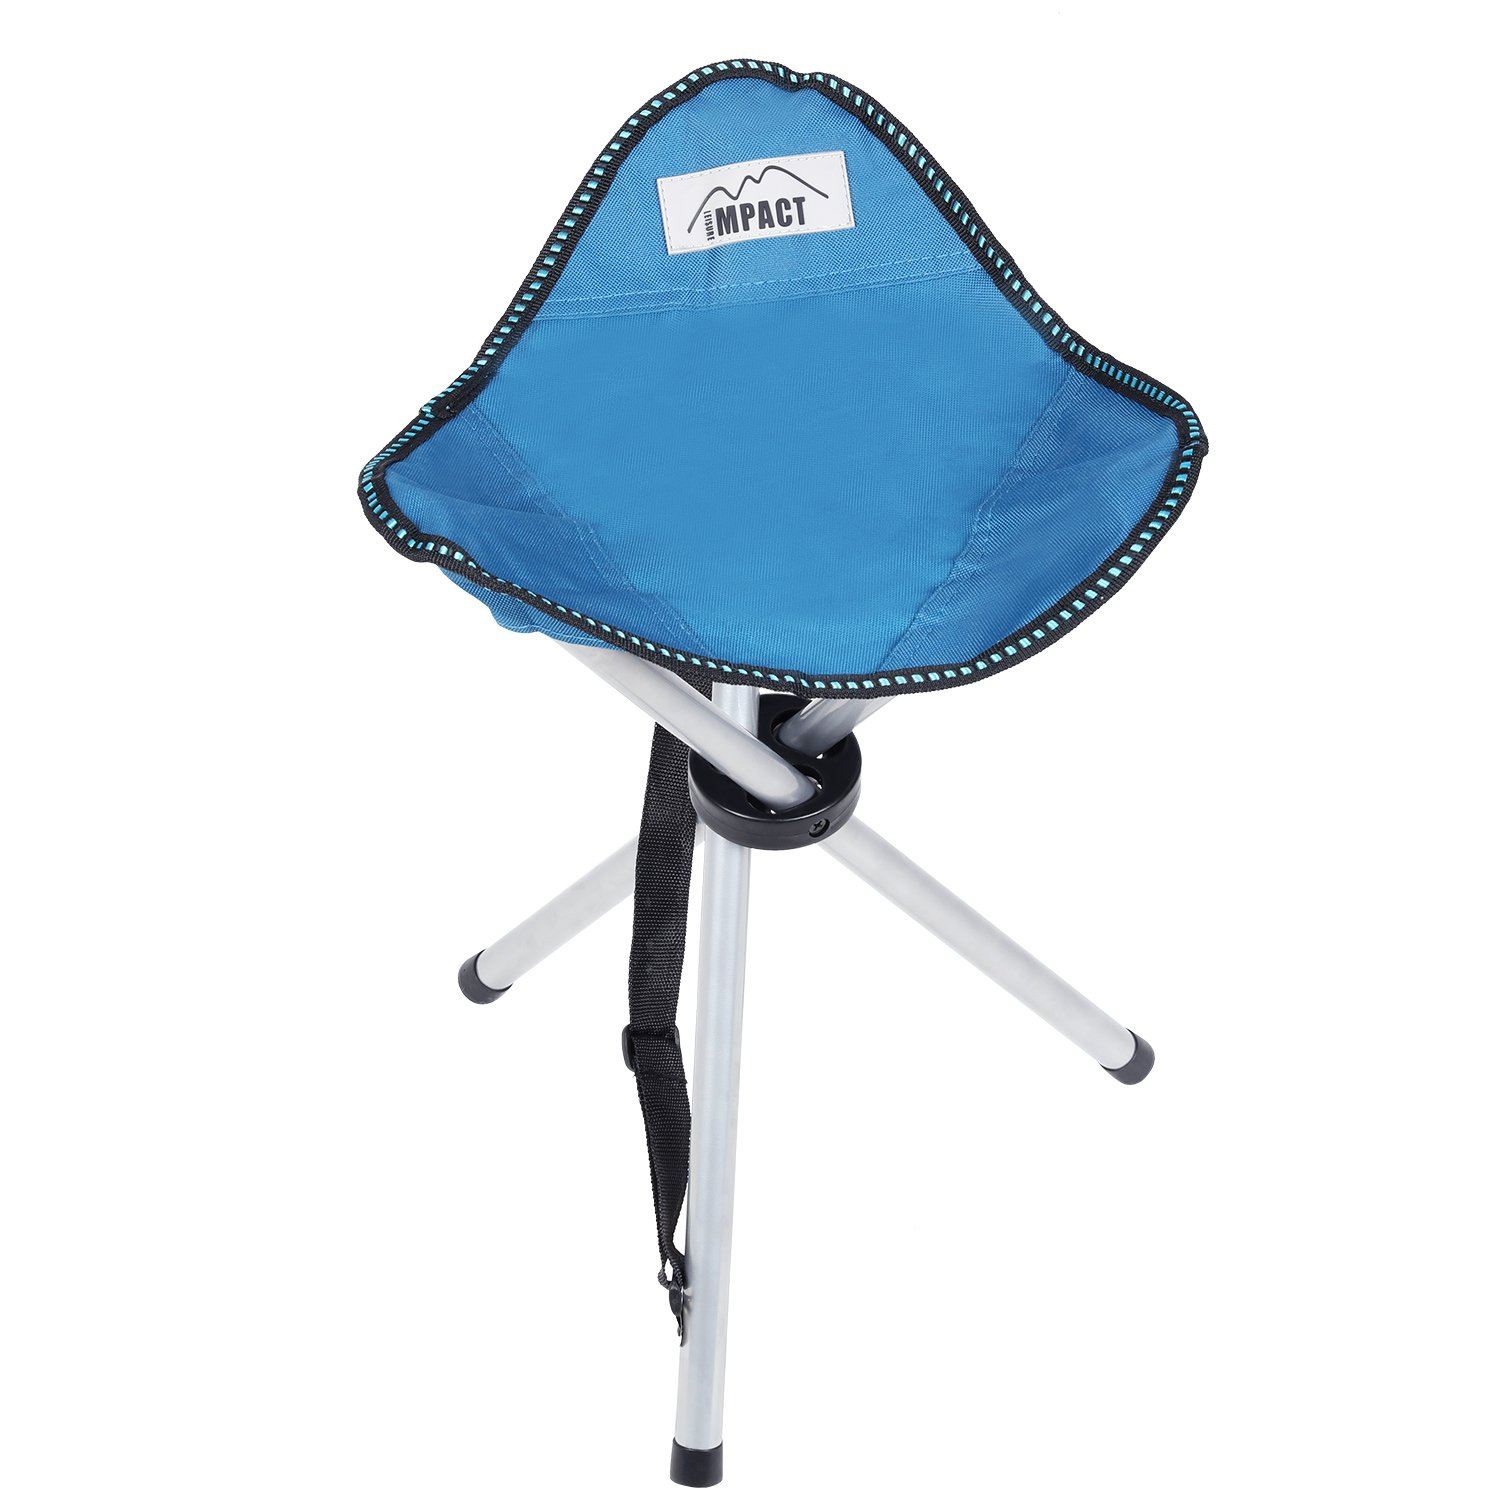 LEISURE IMPACT Lightweight Portable Tripod Stool for Camping Hiking with Shoulder Strap